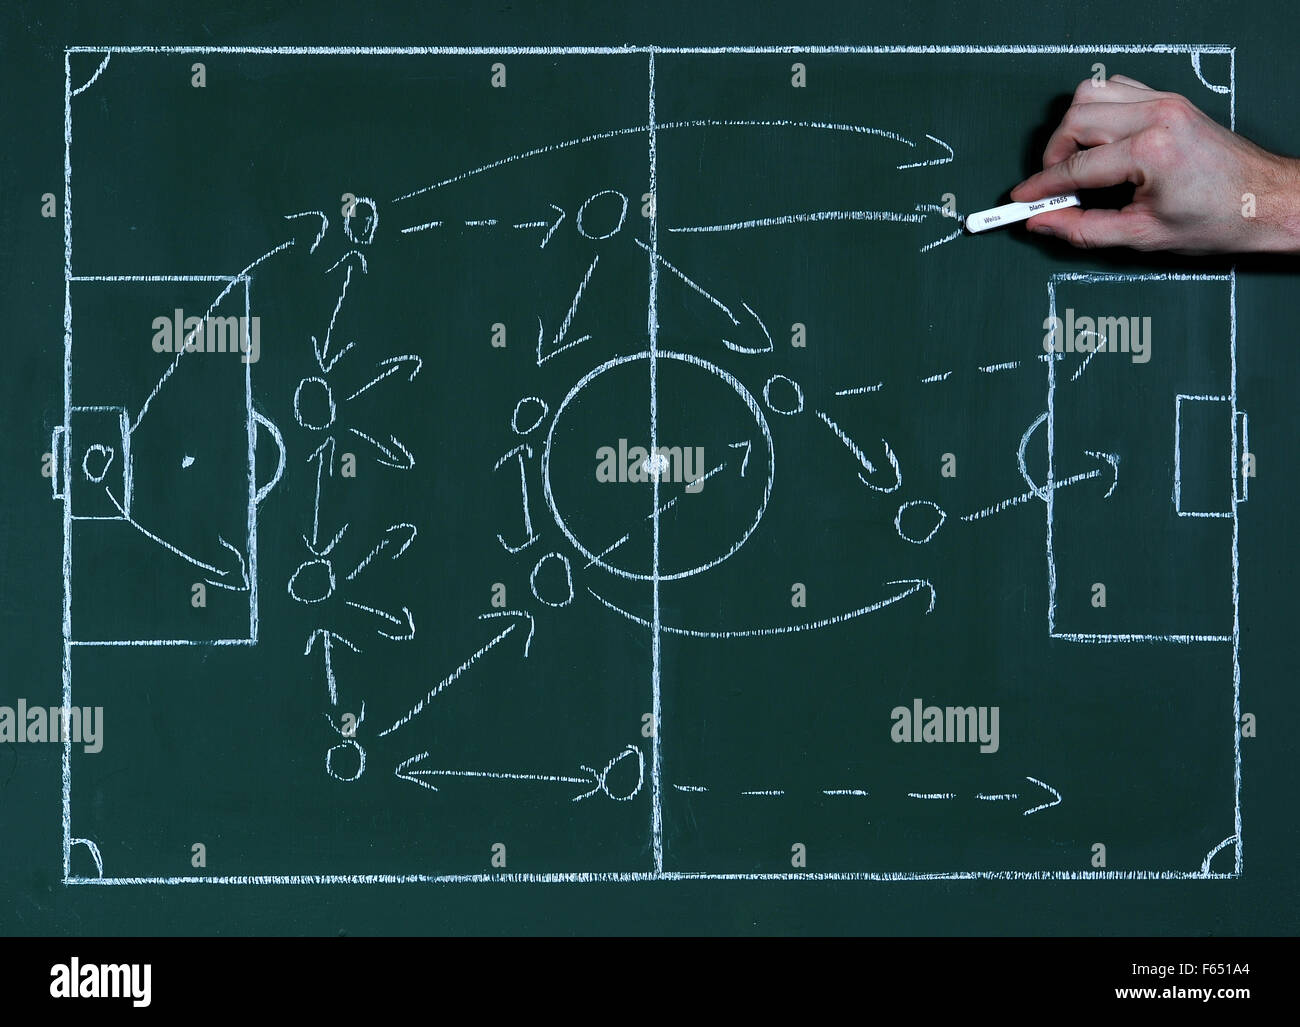 Tactic instructions for individual positions of soccer players are tactic instructions for individual positions of soccer players are visualized on a blackboard in dresden saxony germany 14 february 2013 pooptronica Choice Image